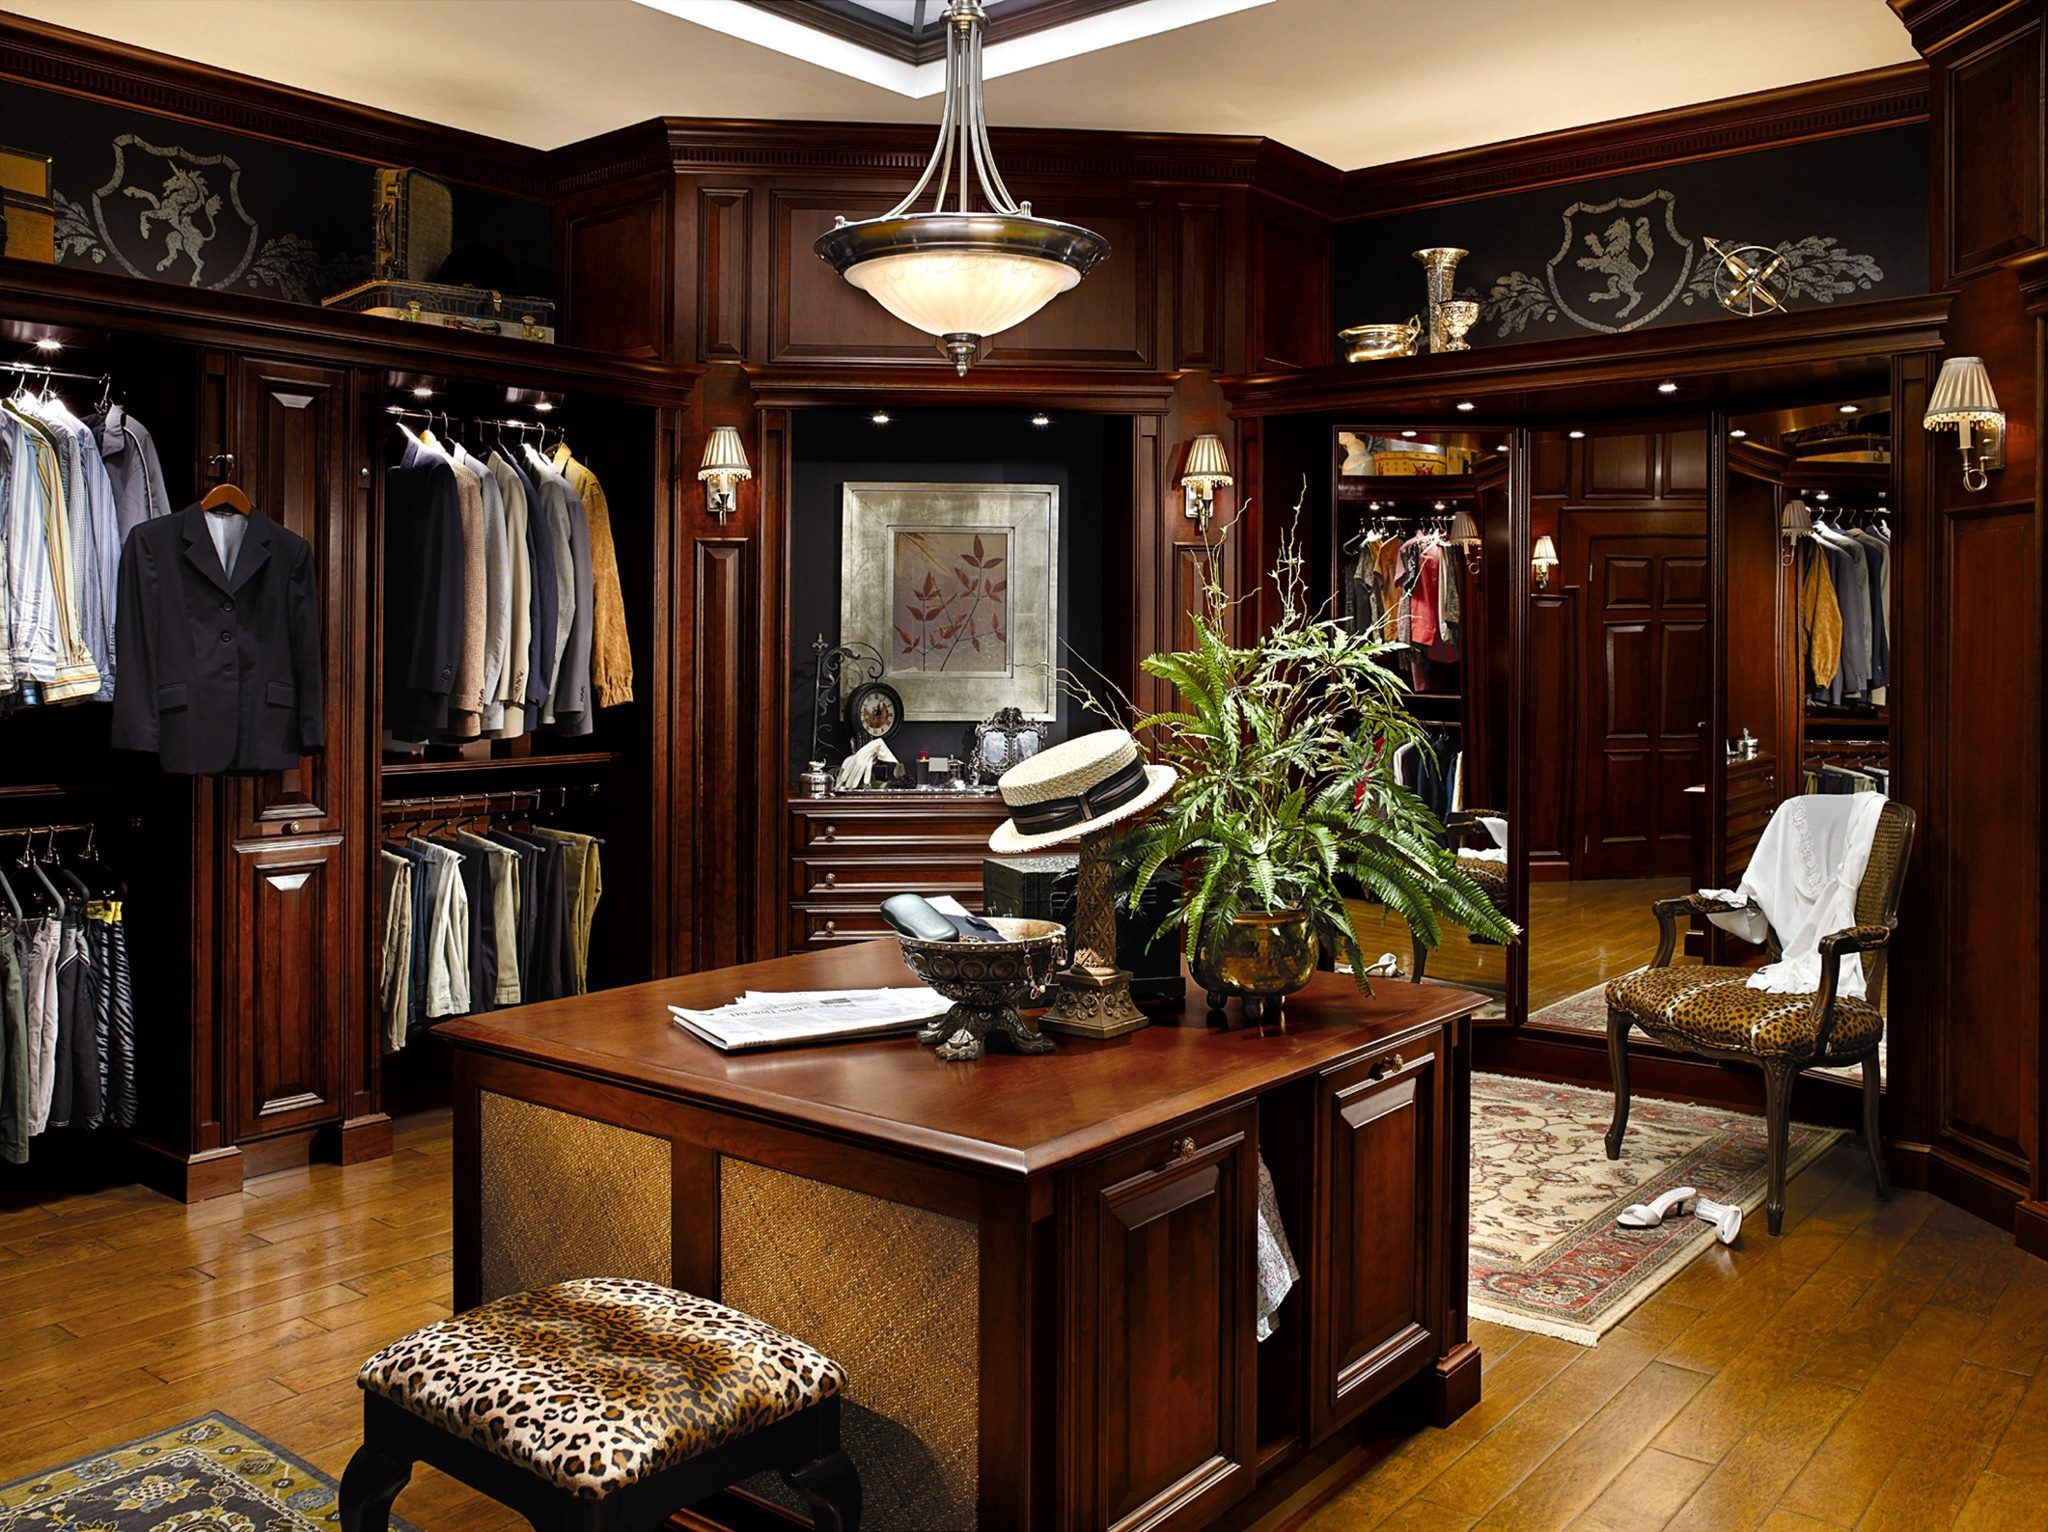 The Dressing Room For Handsome Men Home Closet Designs Men Closet